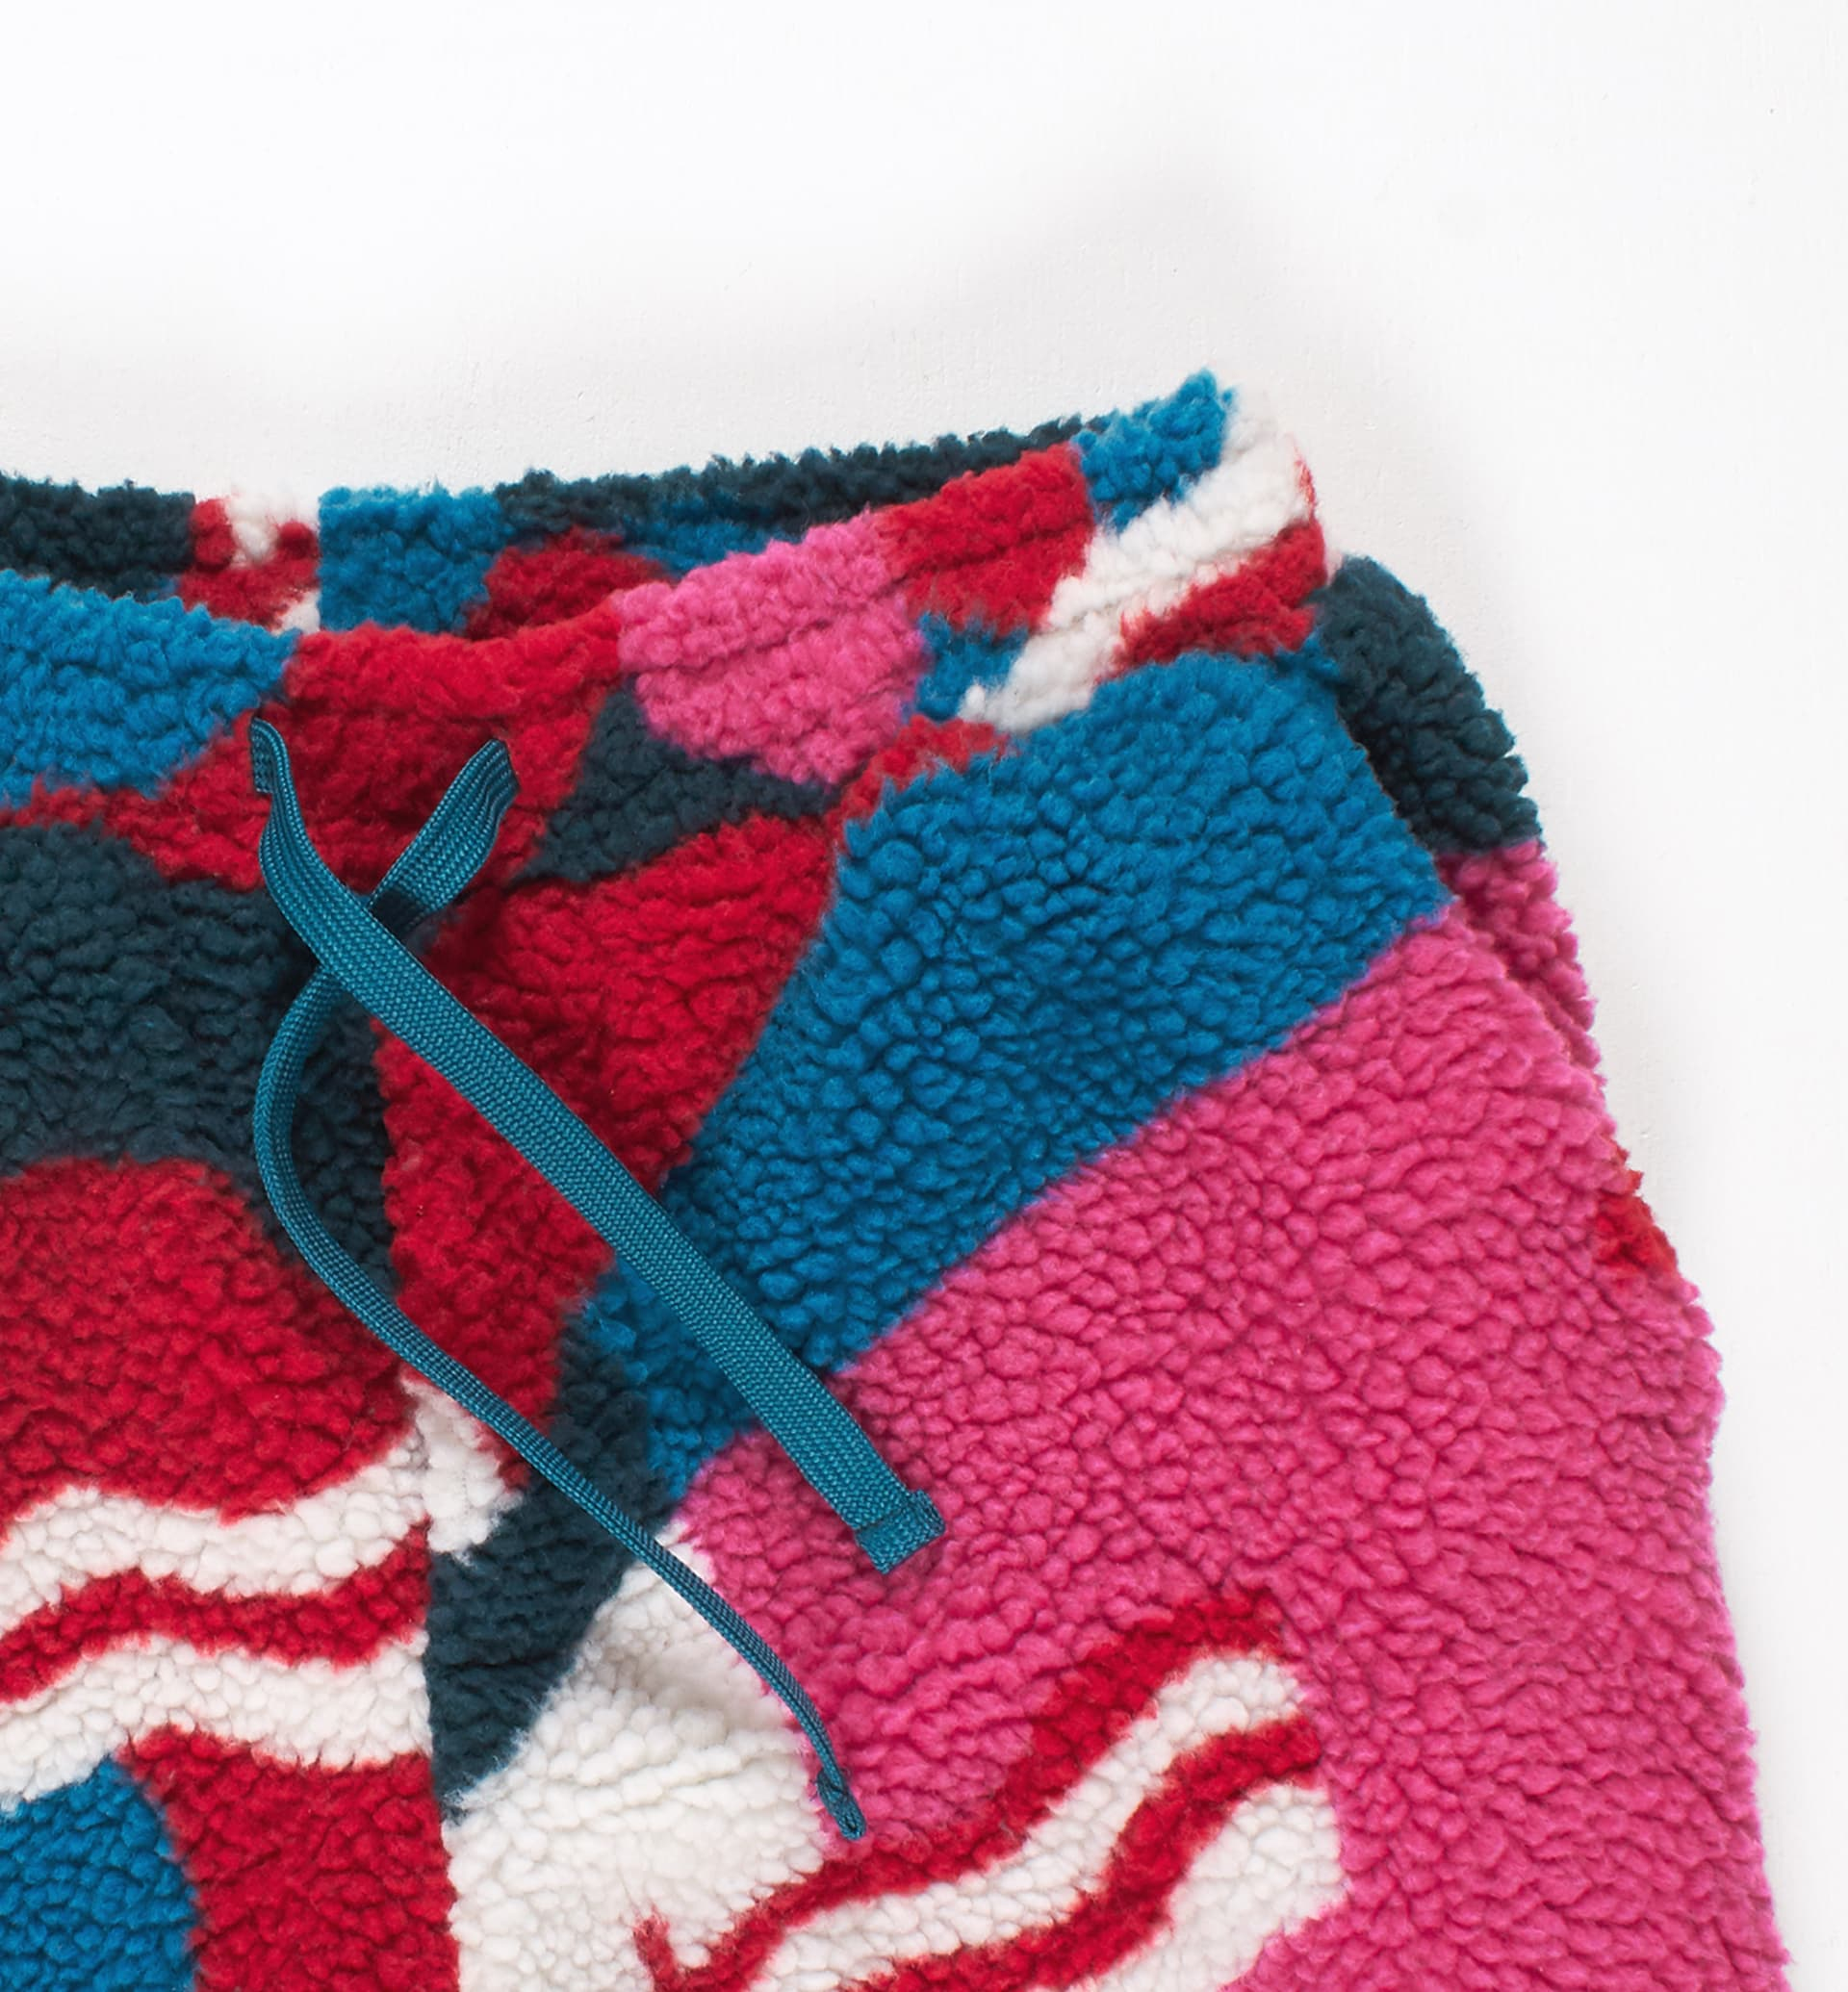 Parra - flag mountain racer sherpa fleece pants